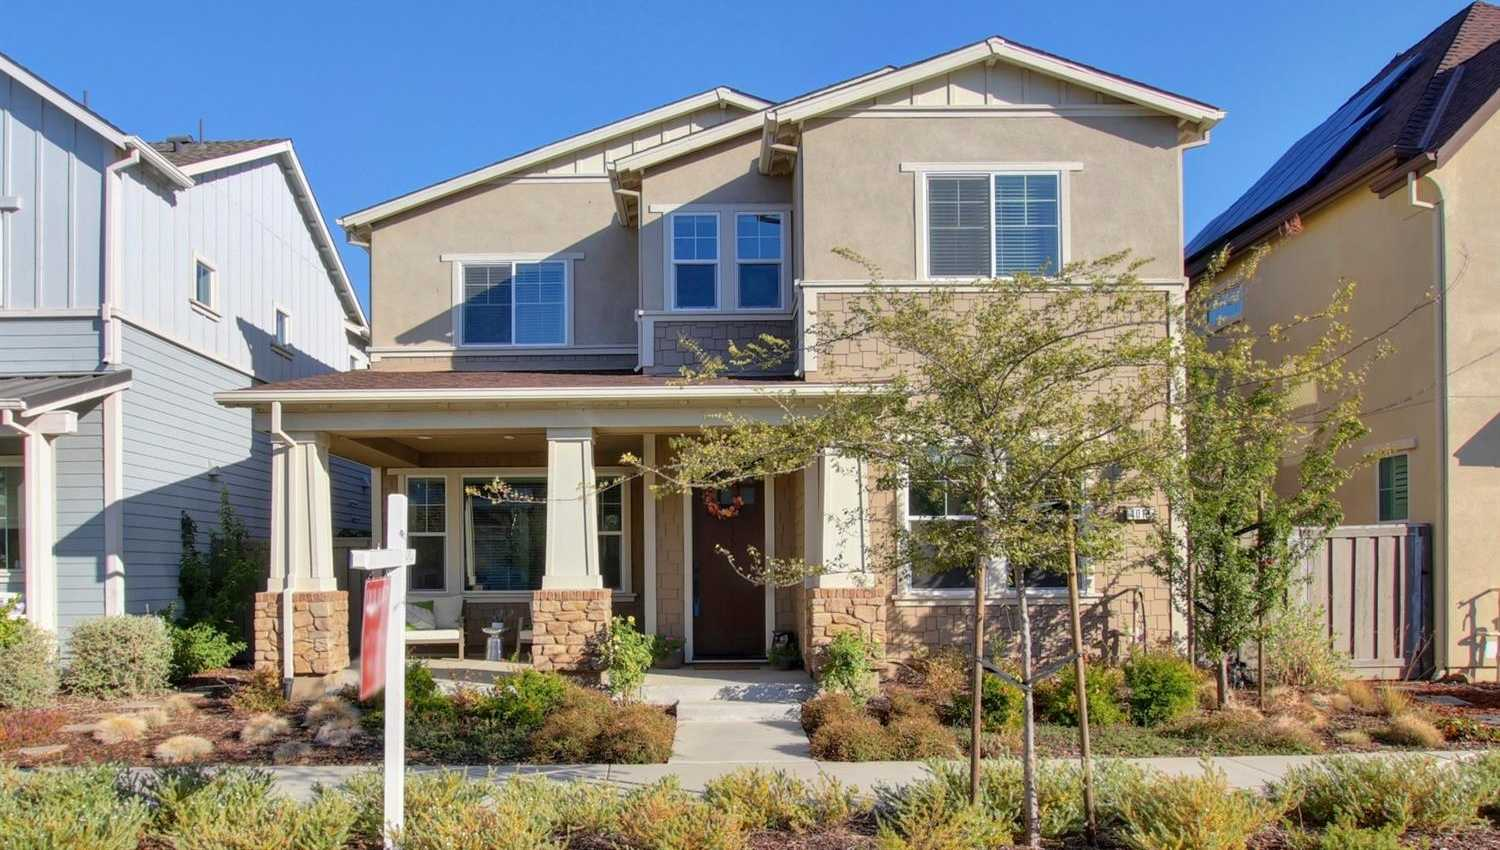 $1,049,900 - 5Br/4Ba -  for Sale in The Cannery, Davis